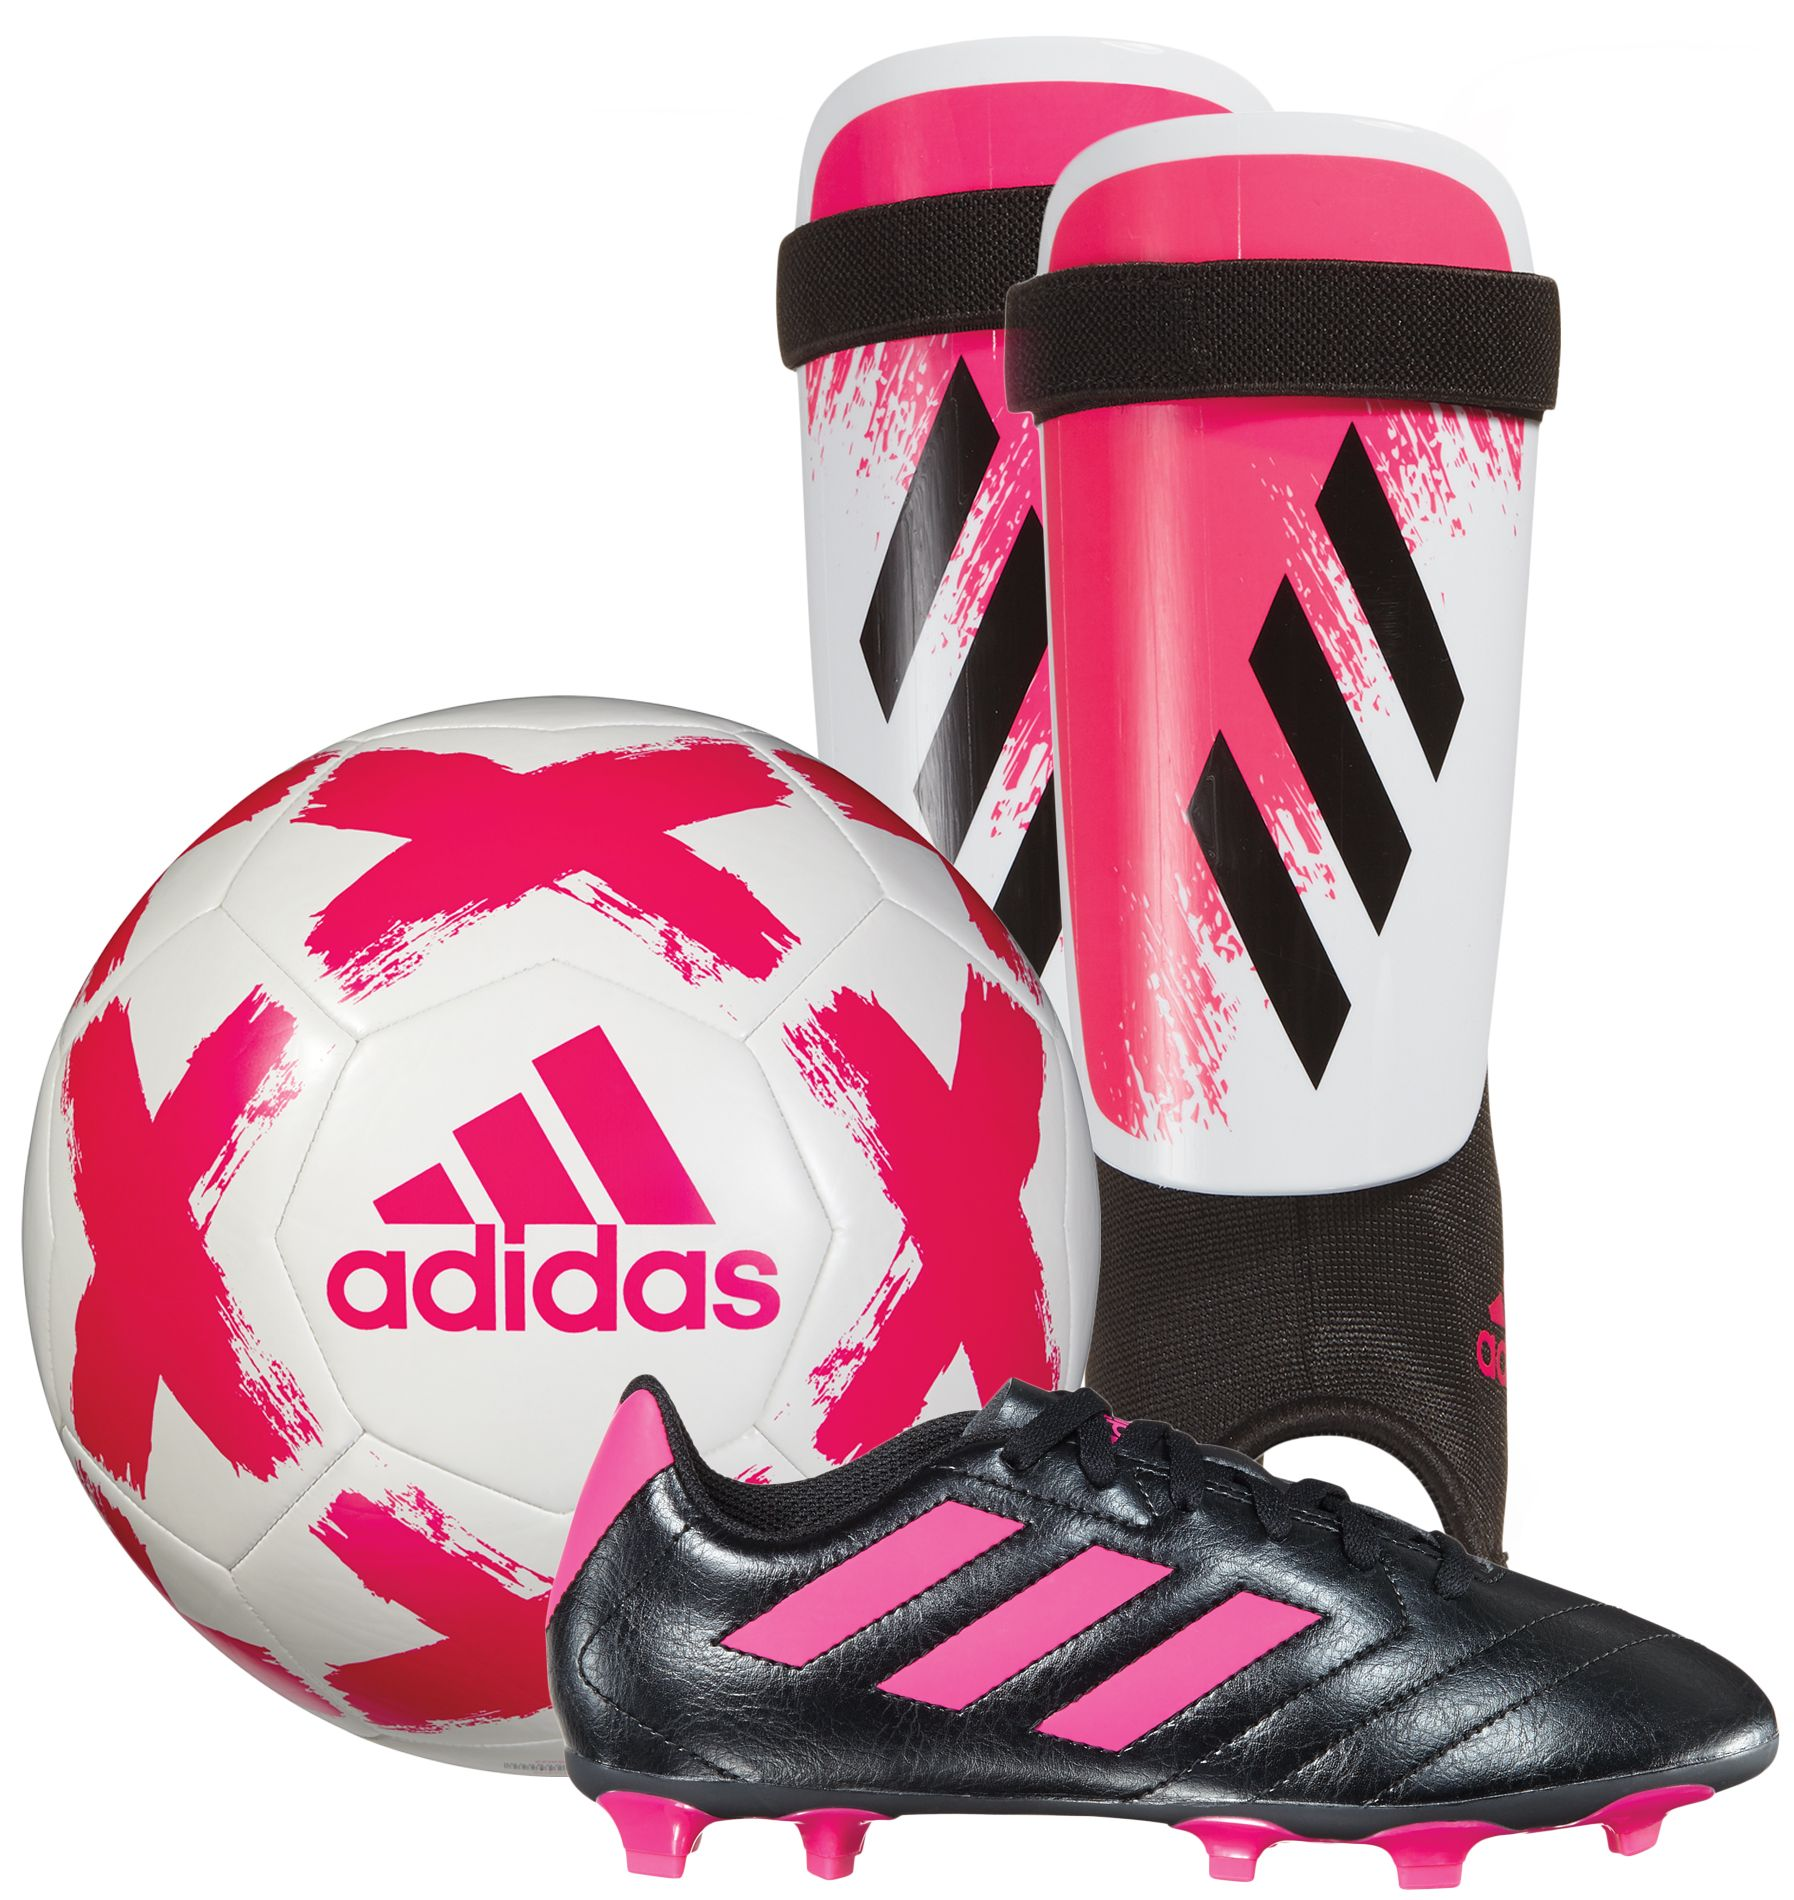 adidas Youth Soccer Starter Kit  - Pink